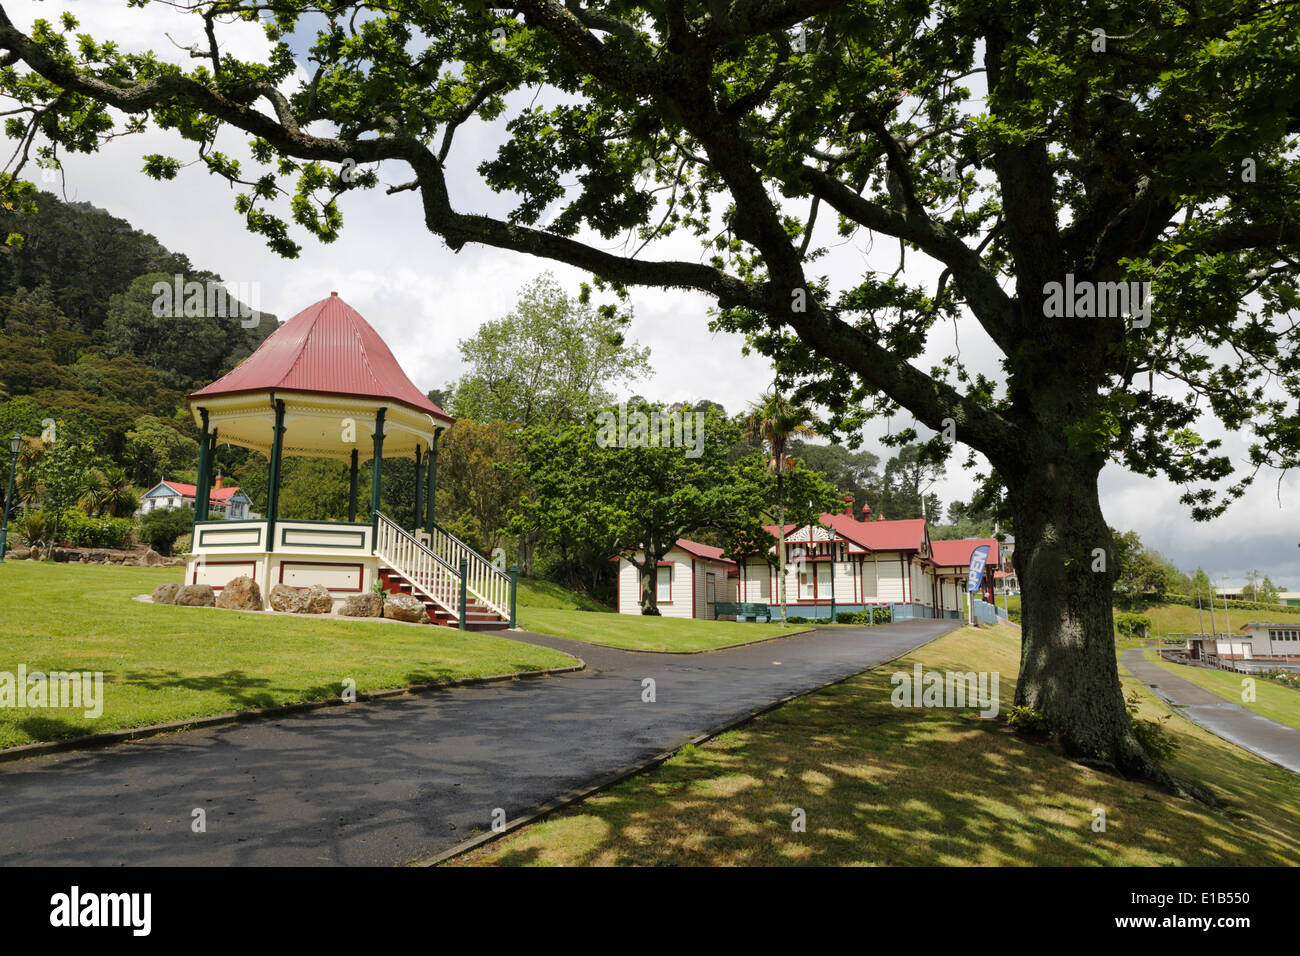 Edwardian Bandstand and gardens in the Te Aroha Domain - Stock Image